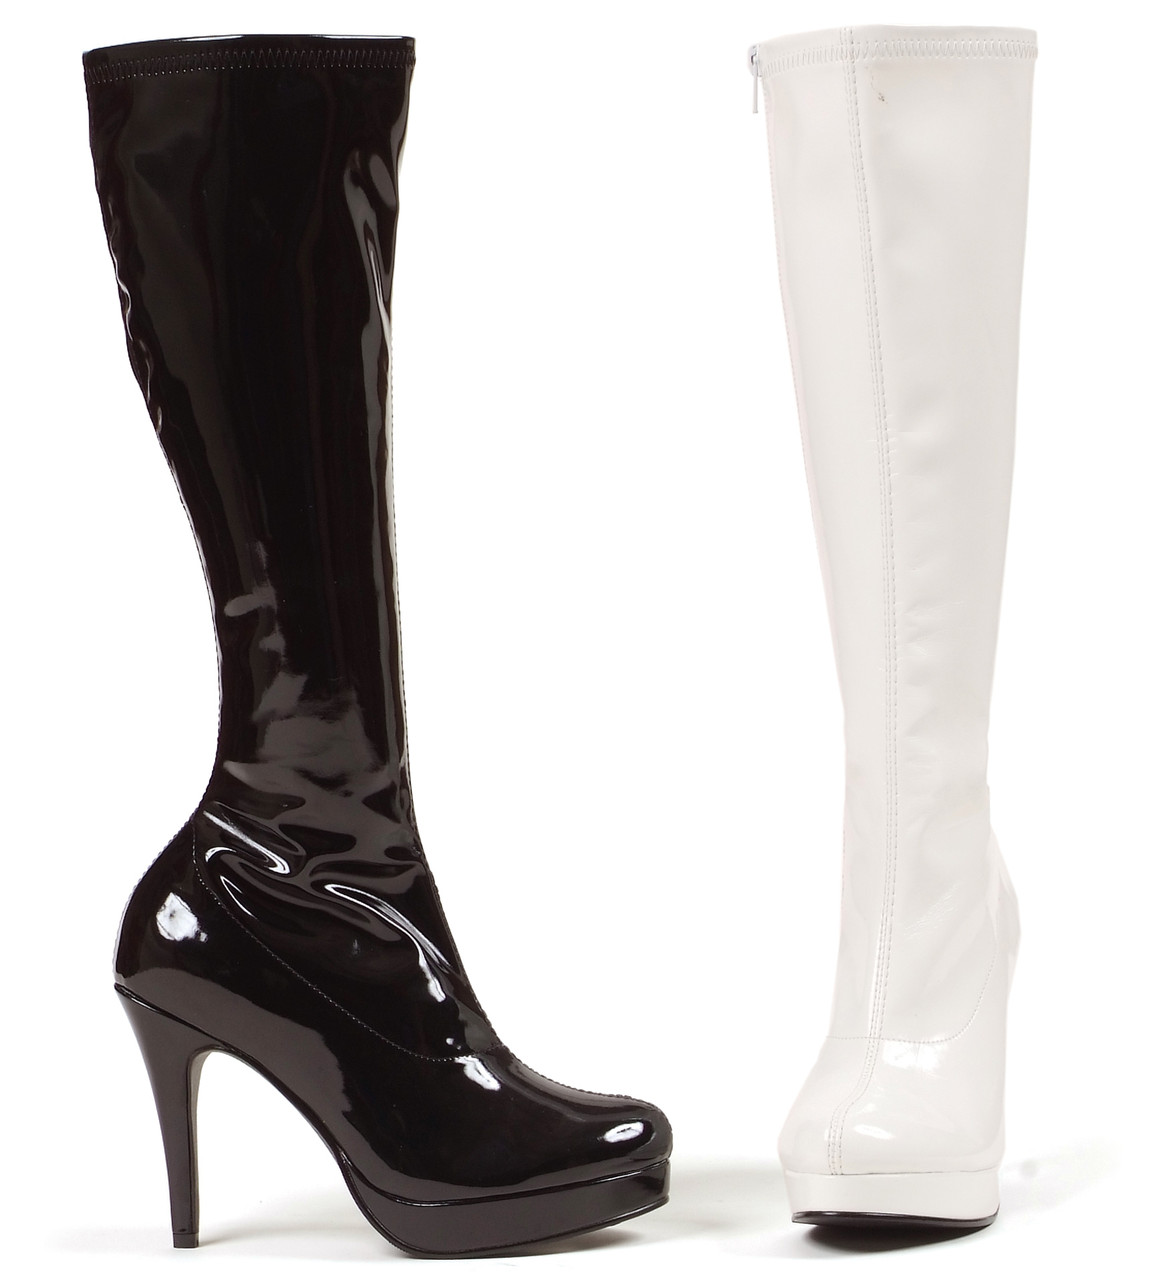 421-Groove 4 Inch GoGo Knee High Boots